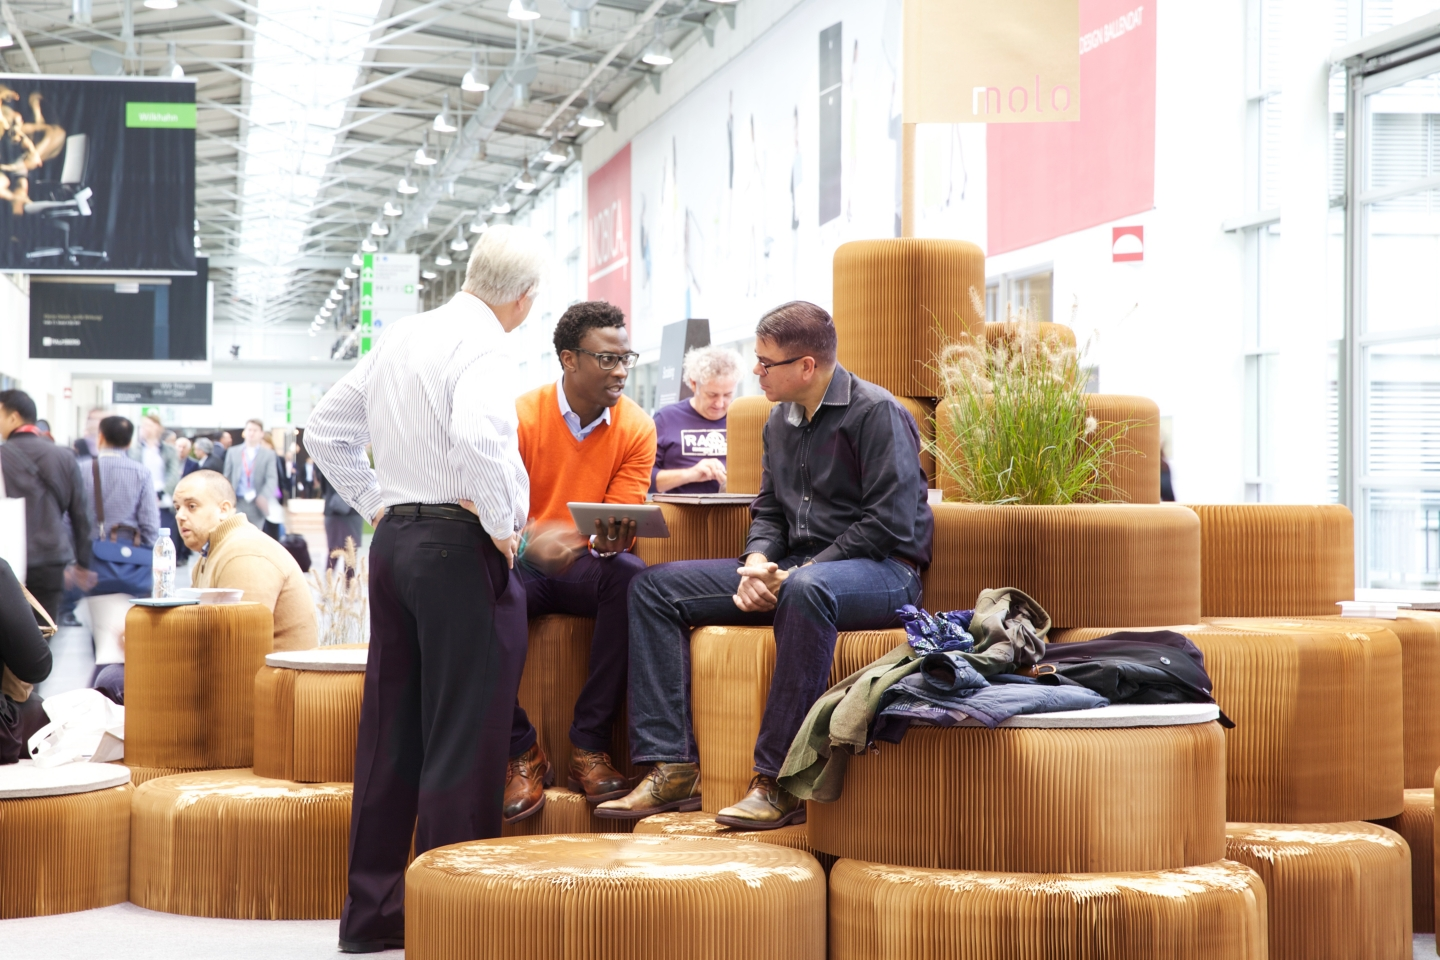 modular paper furniture by molo - Three visitors to Orgatec 2014 discuss business while taking a rest on a hill made of stacked softseating fanning stools.